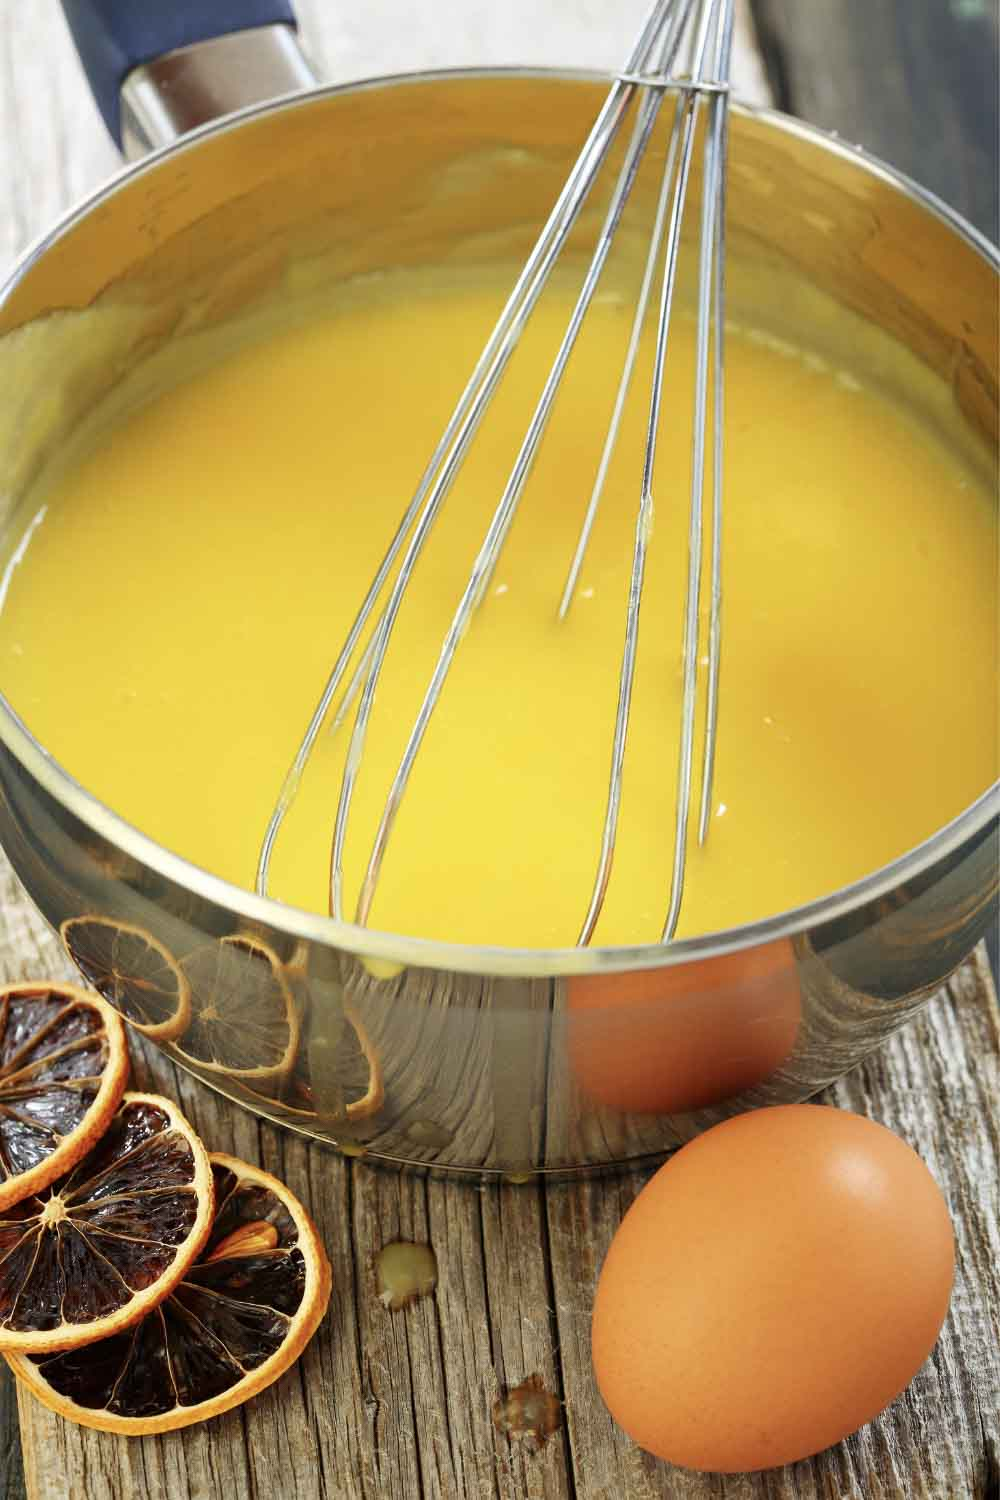 Pot of Lemon Curd with Whisk